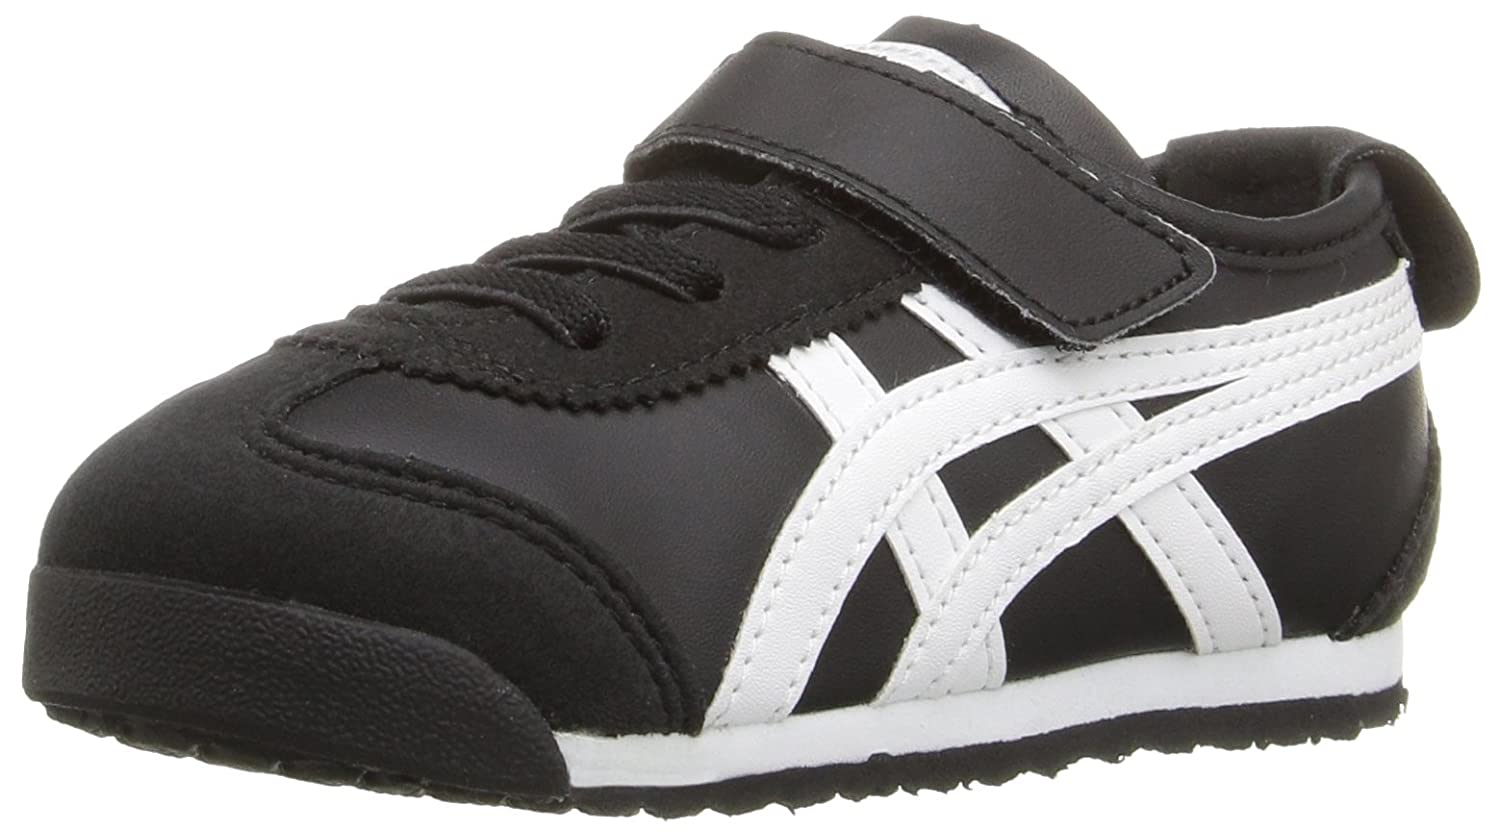 reputable site 67a06 a7559 Onitsuka Tiger Mexico 66 PS Lace-Up Sneaker (Toddler/Little Kid/Big Kid)